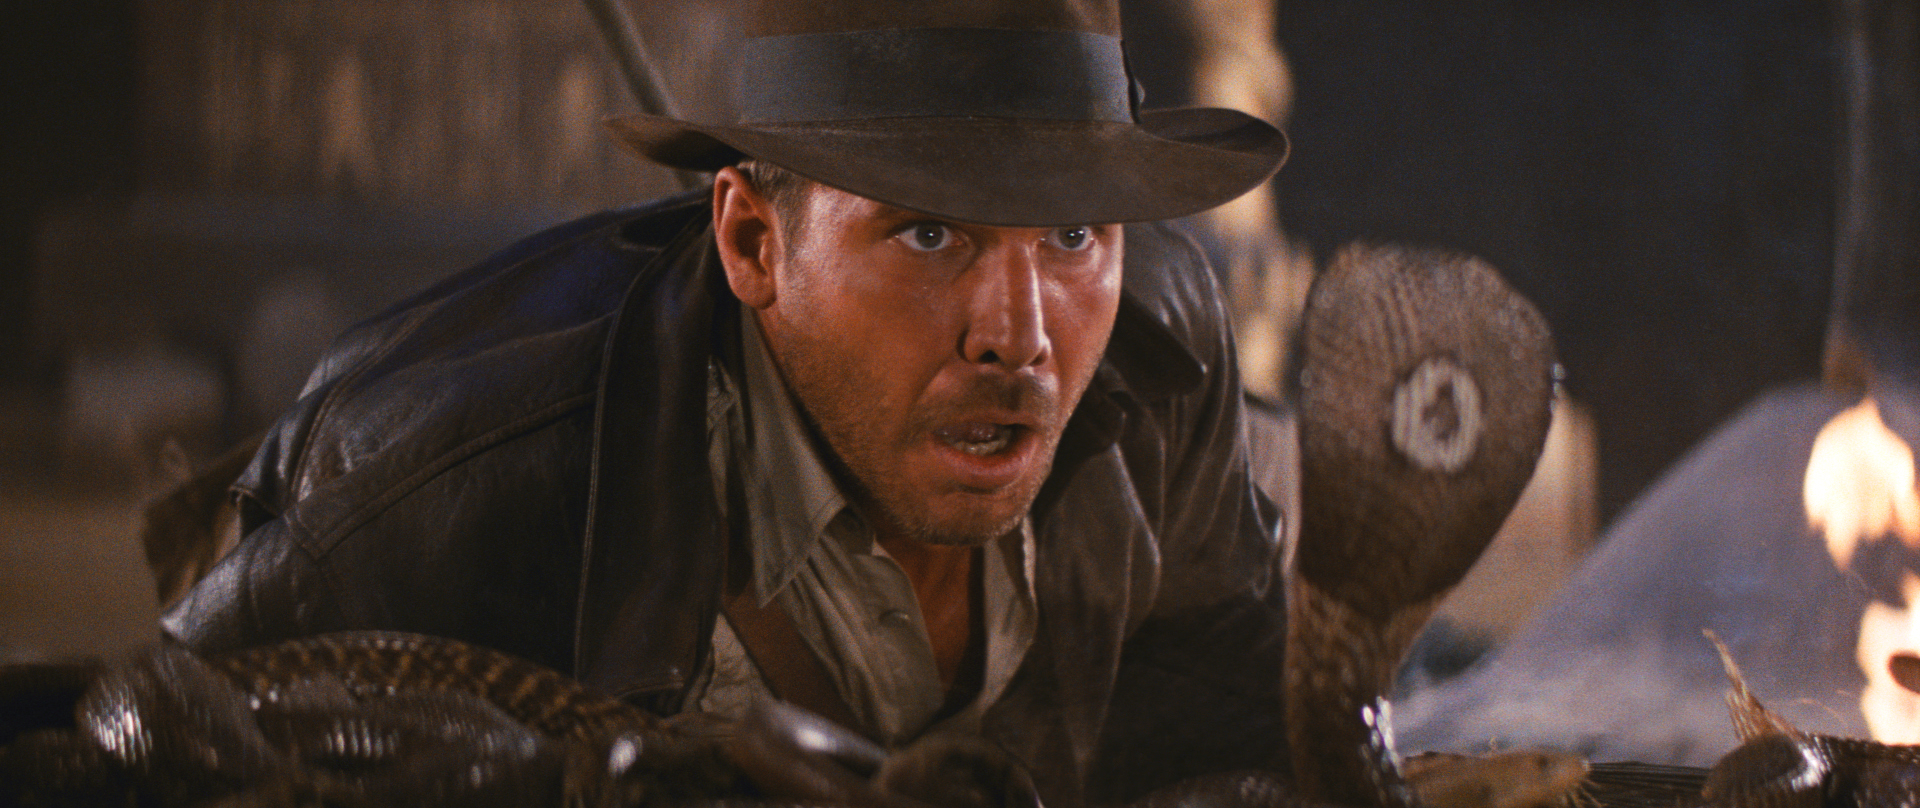 indiana jones 5 trailer